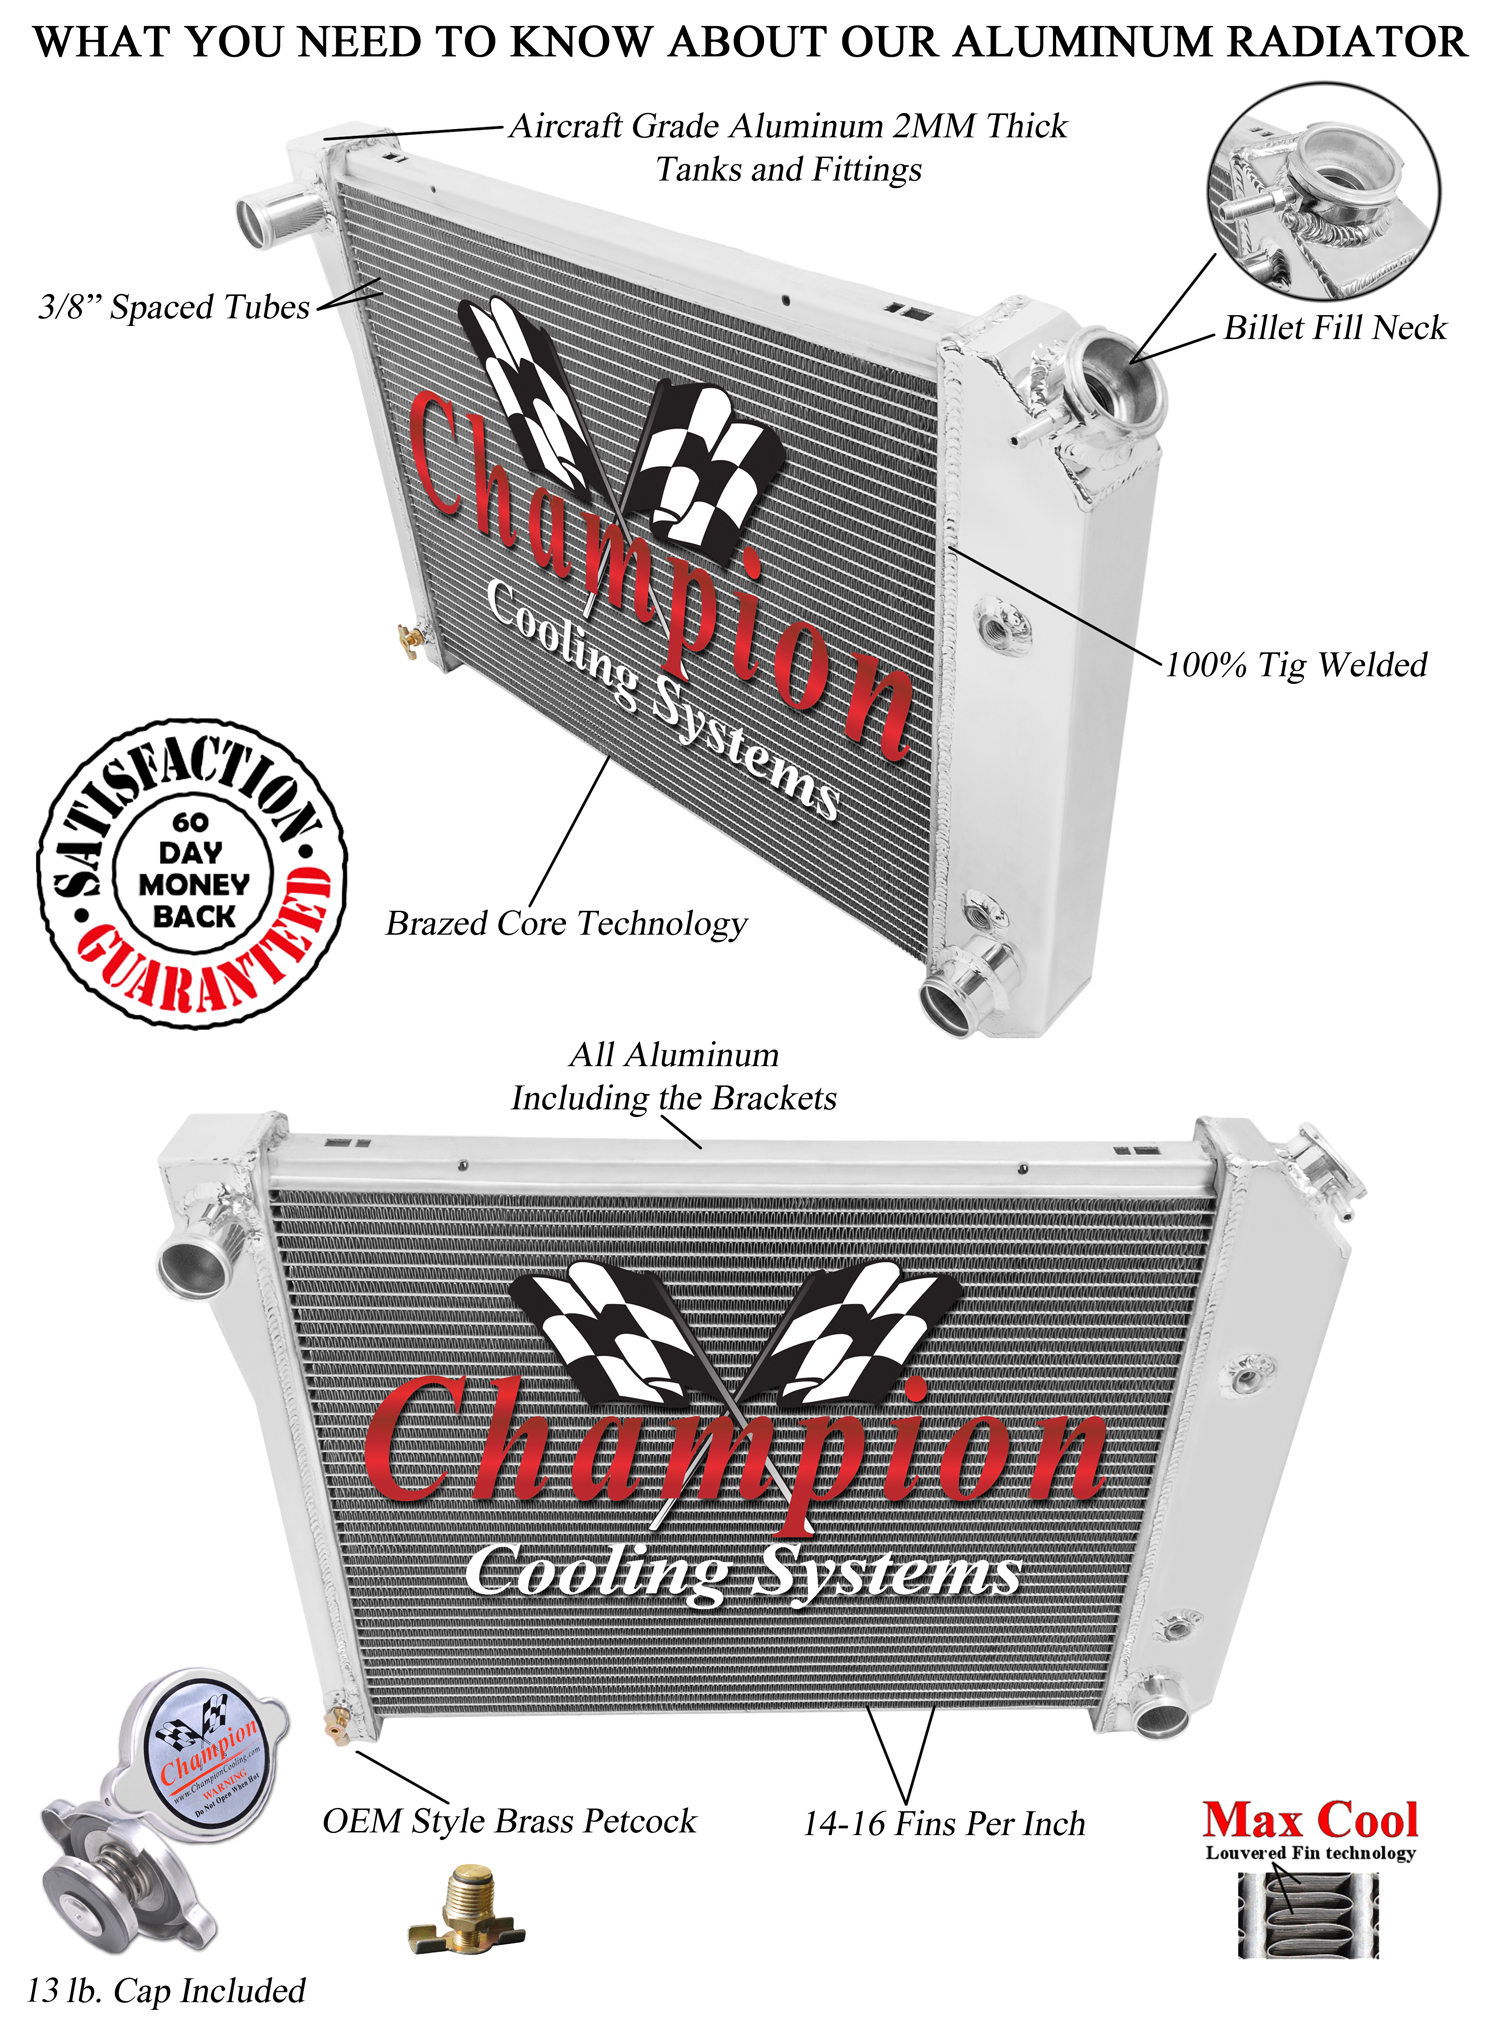 https://www.championcooling.com/photos/Photos%20White/Without%20Fans/571/571_%20white_diagram_1.jpg